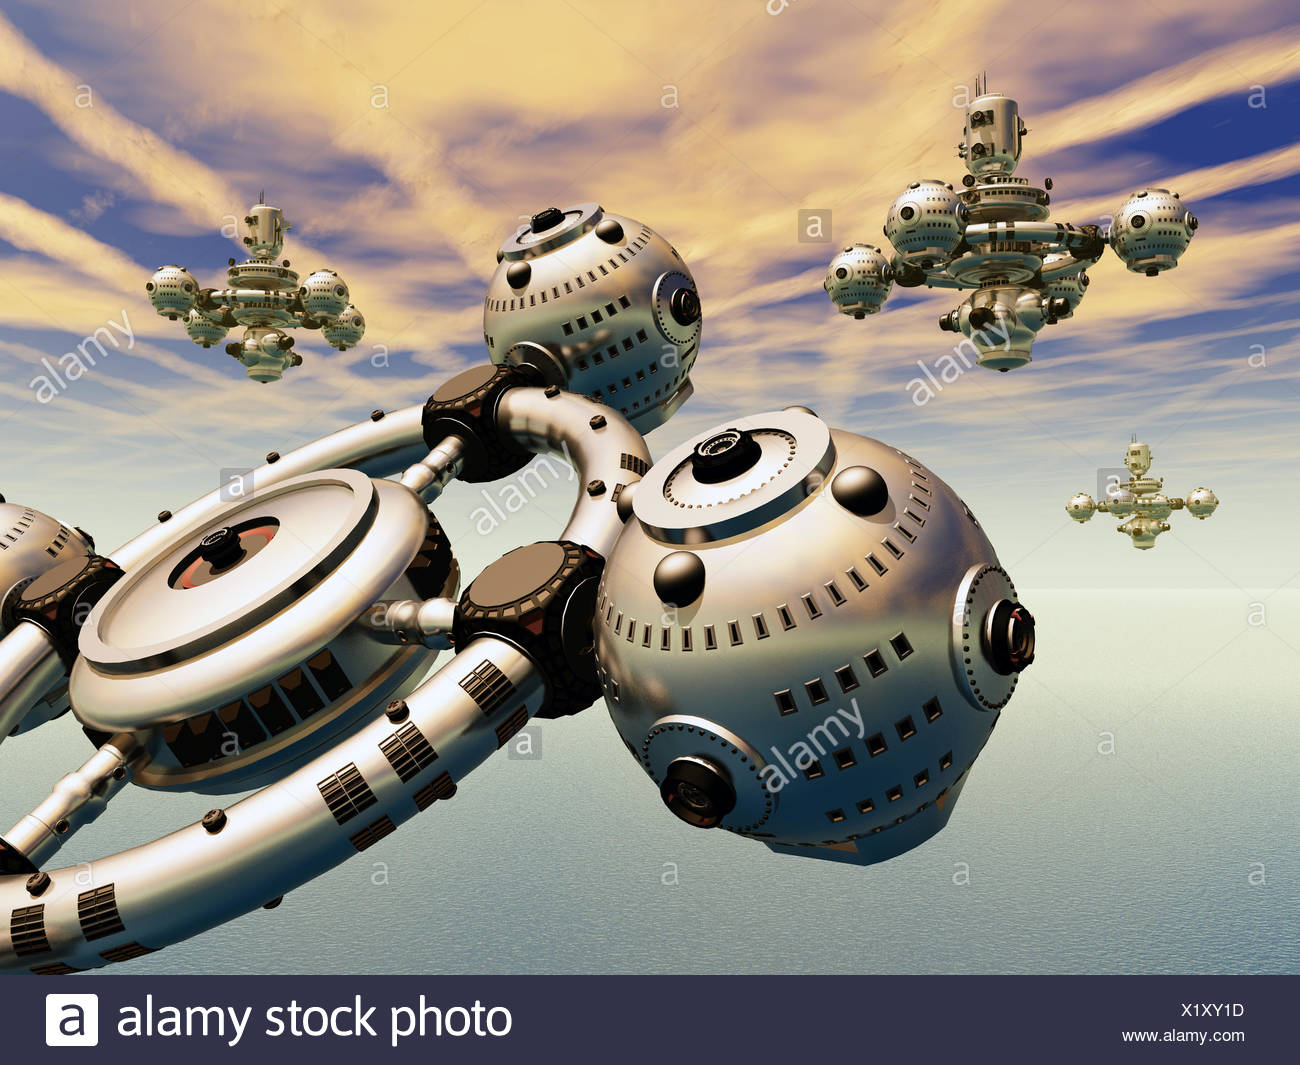 Earth Atmosphere with Alien Spacecrafts - Stock Image